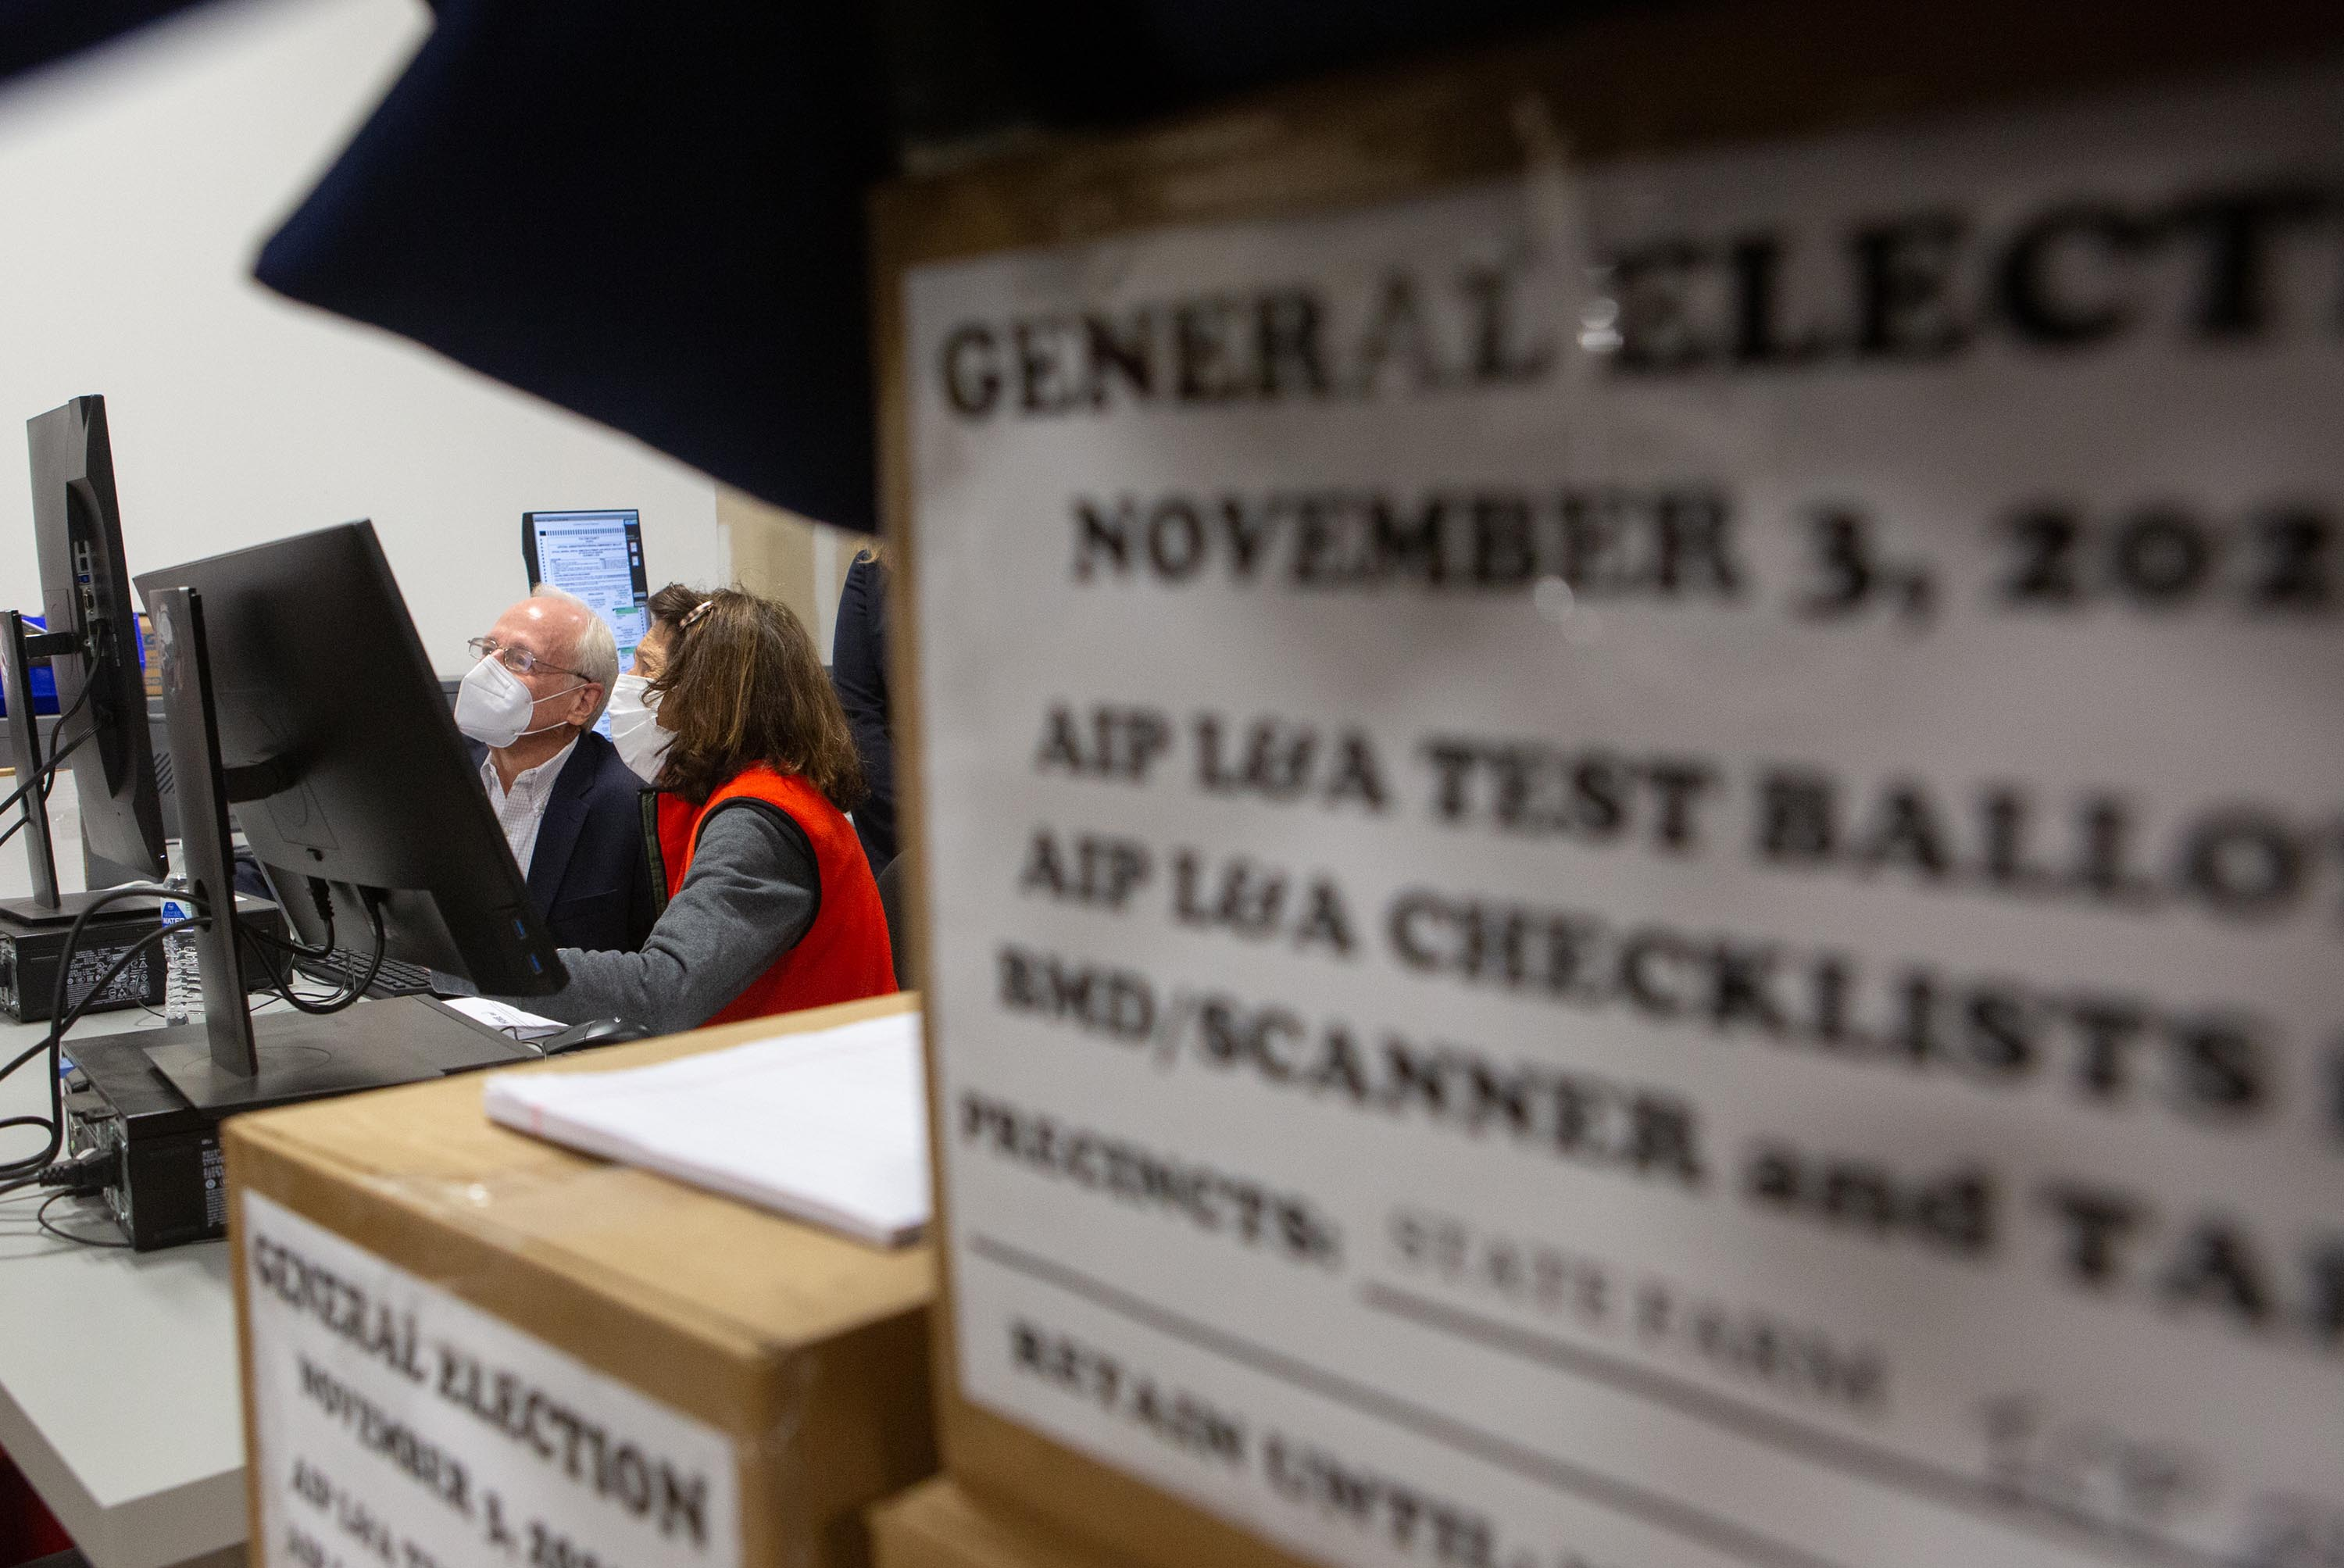 Fact-checking claims signature audits in Georgia would uncover fraud